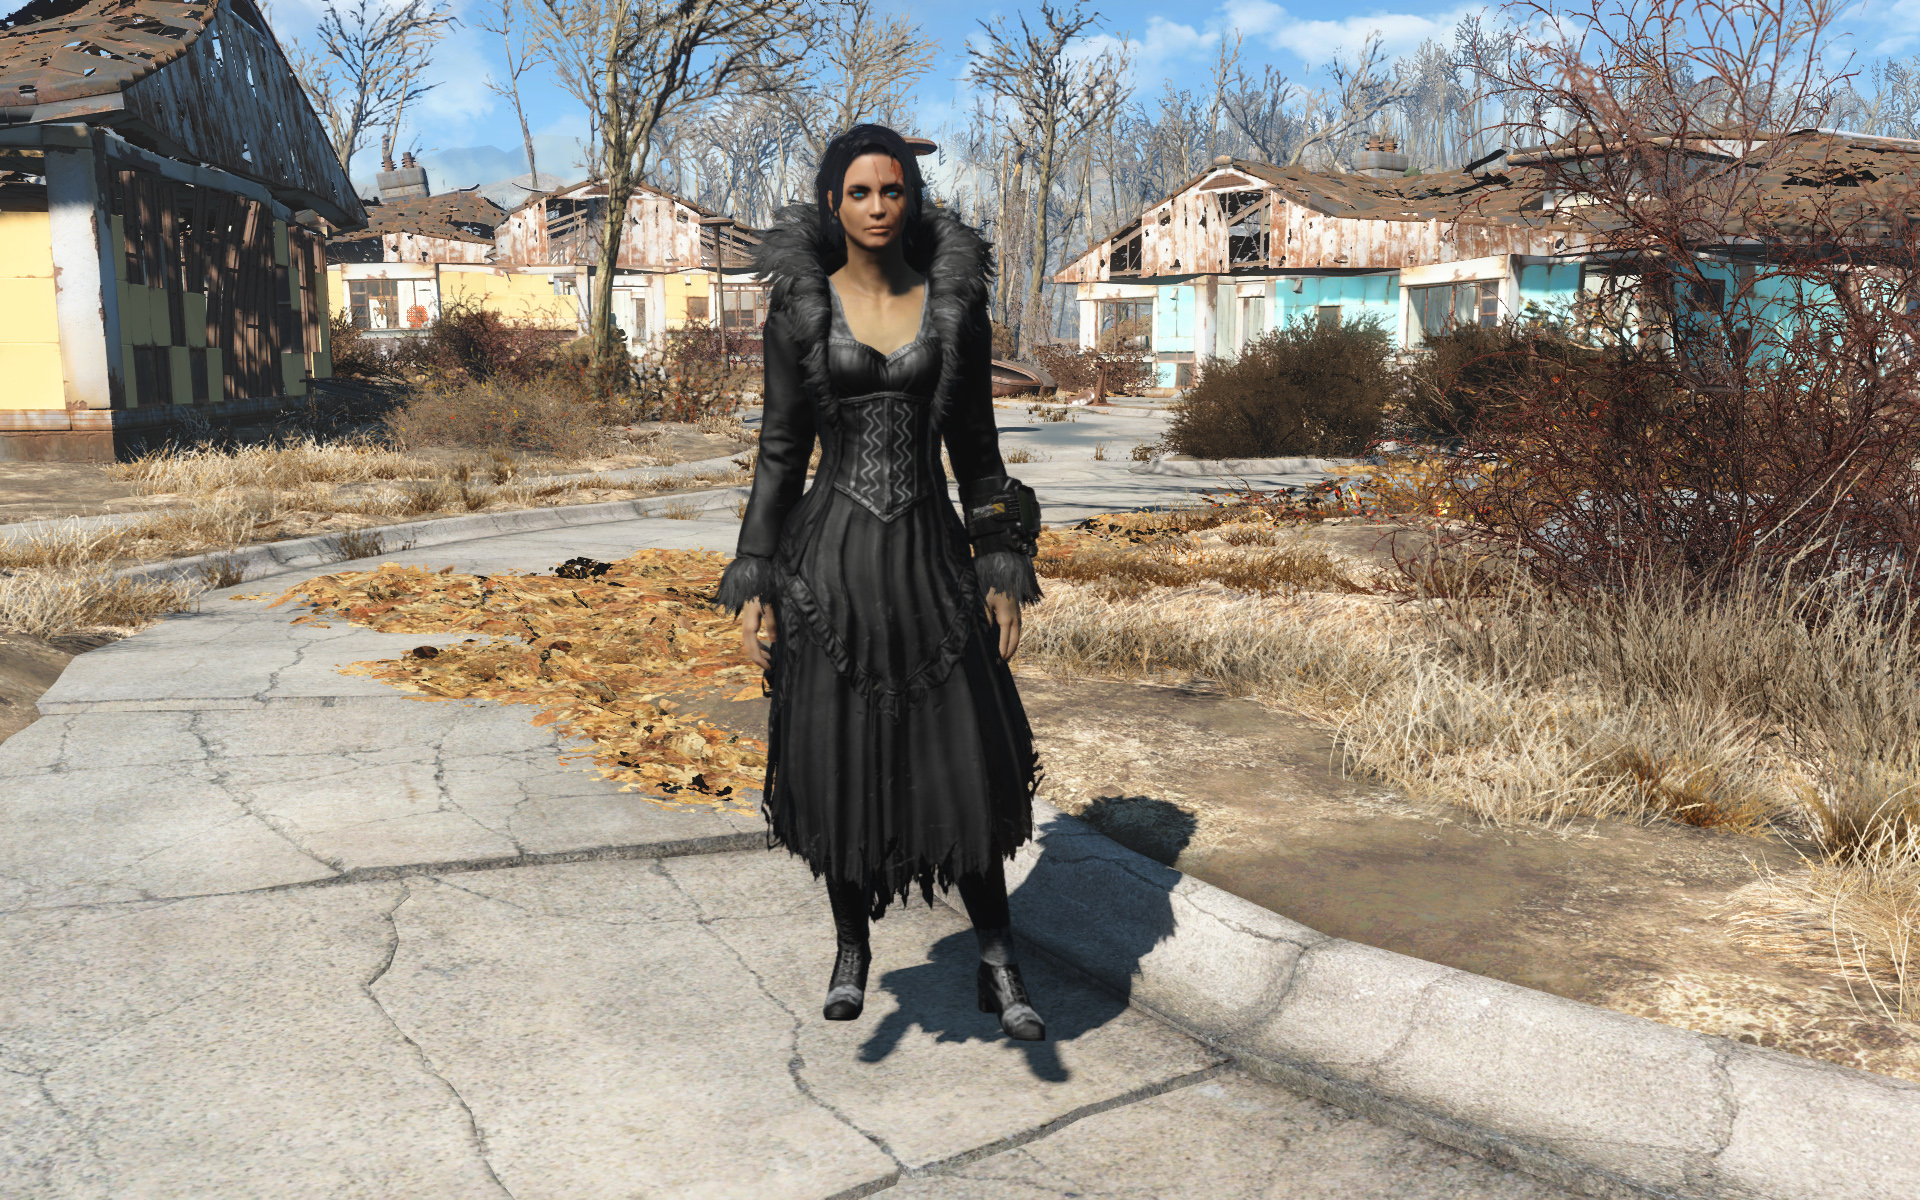 black-feathered-dress-fallout4mods